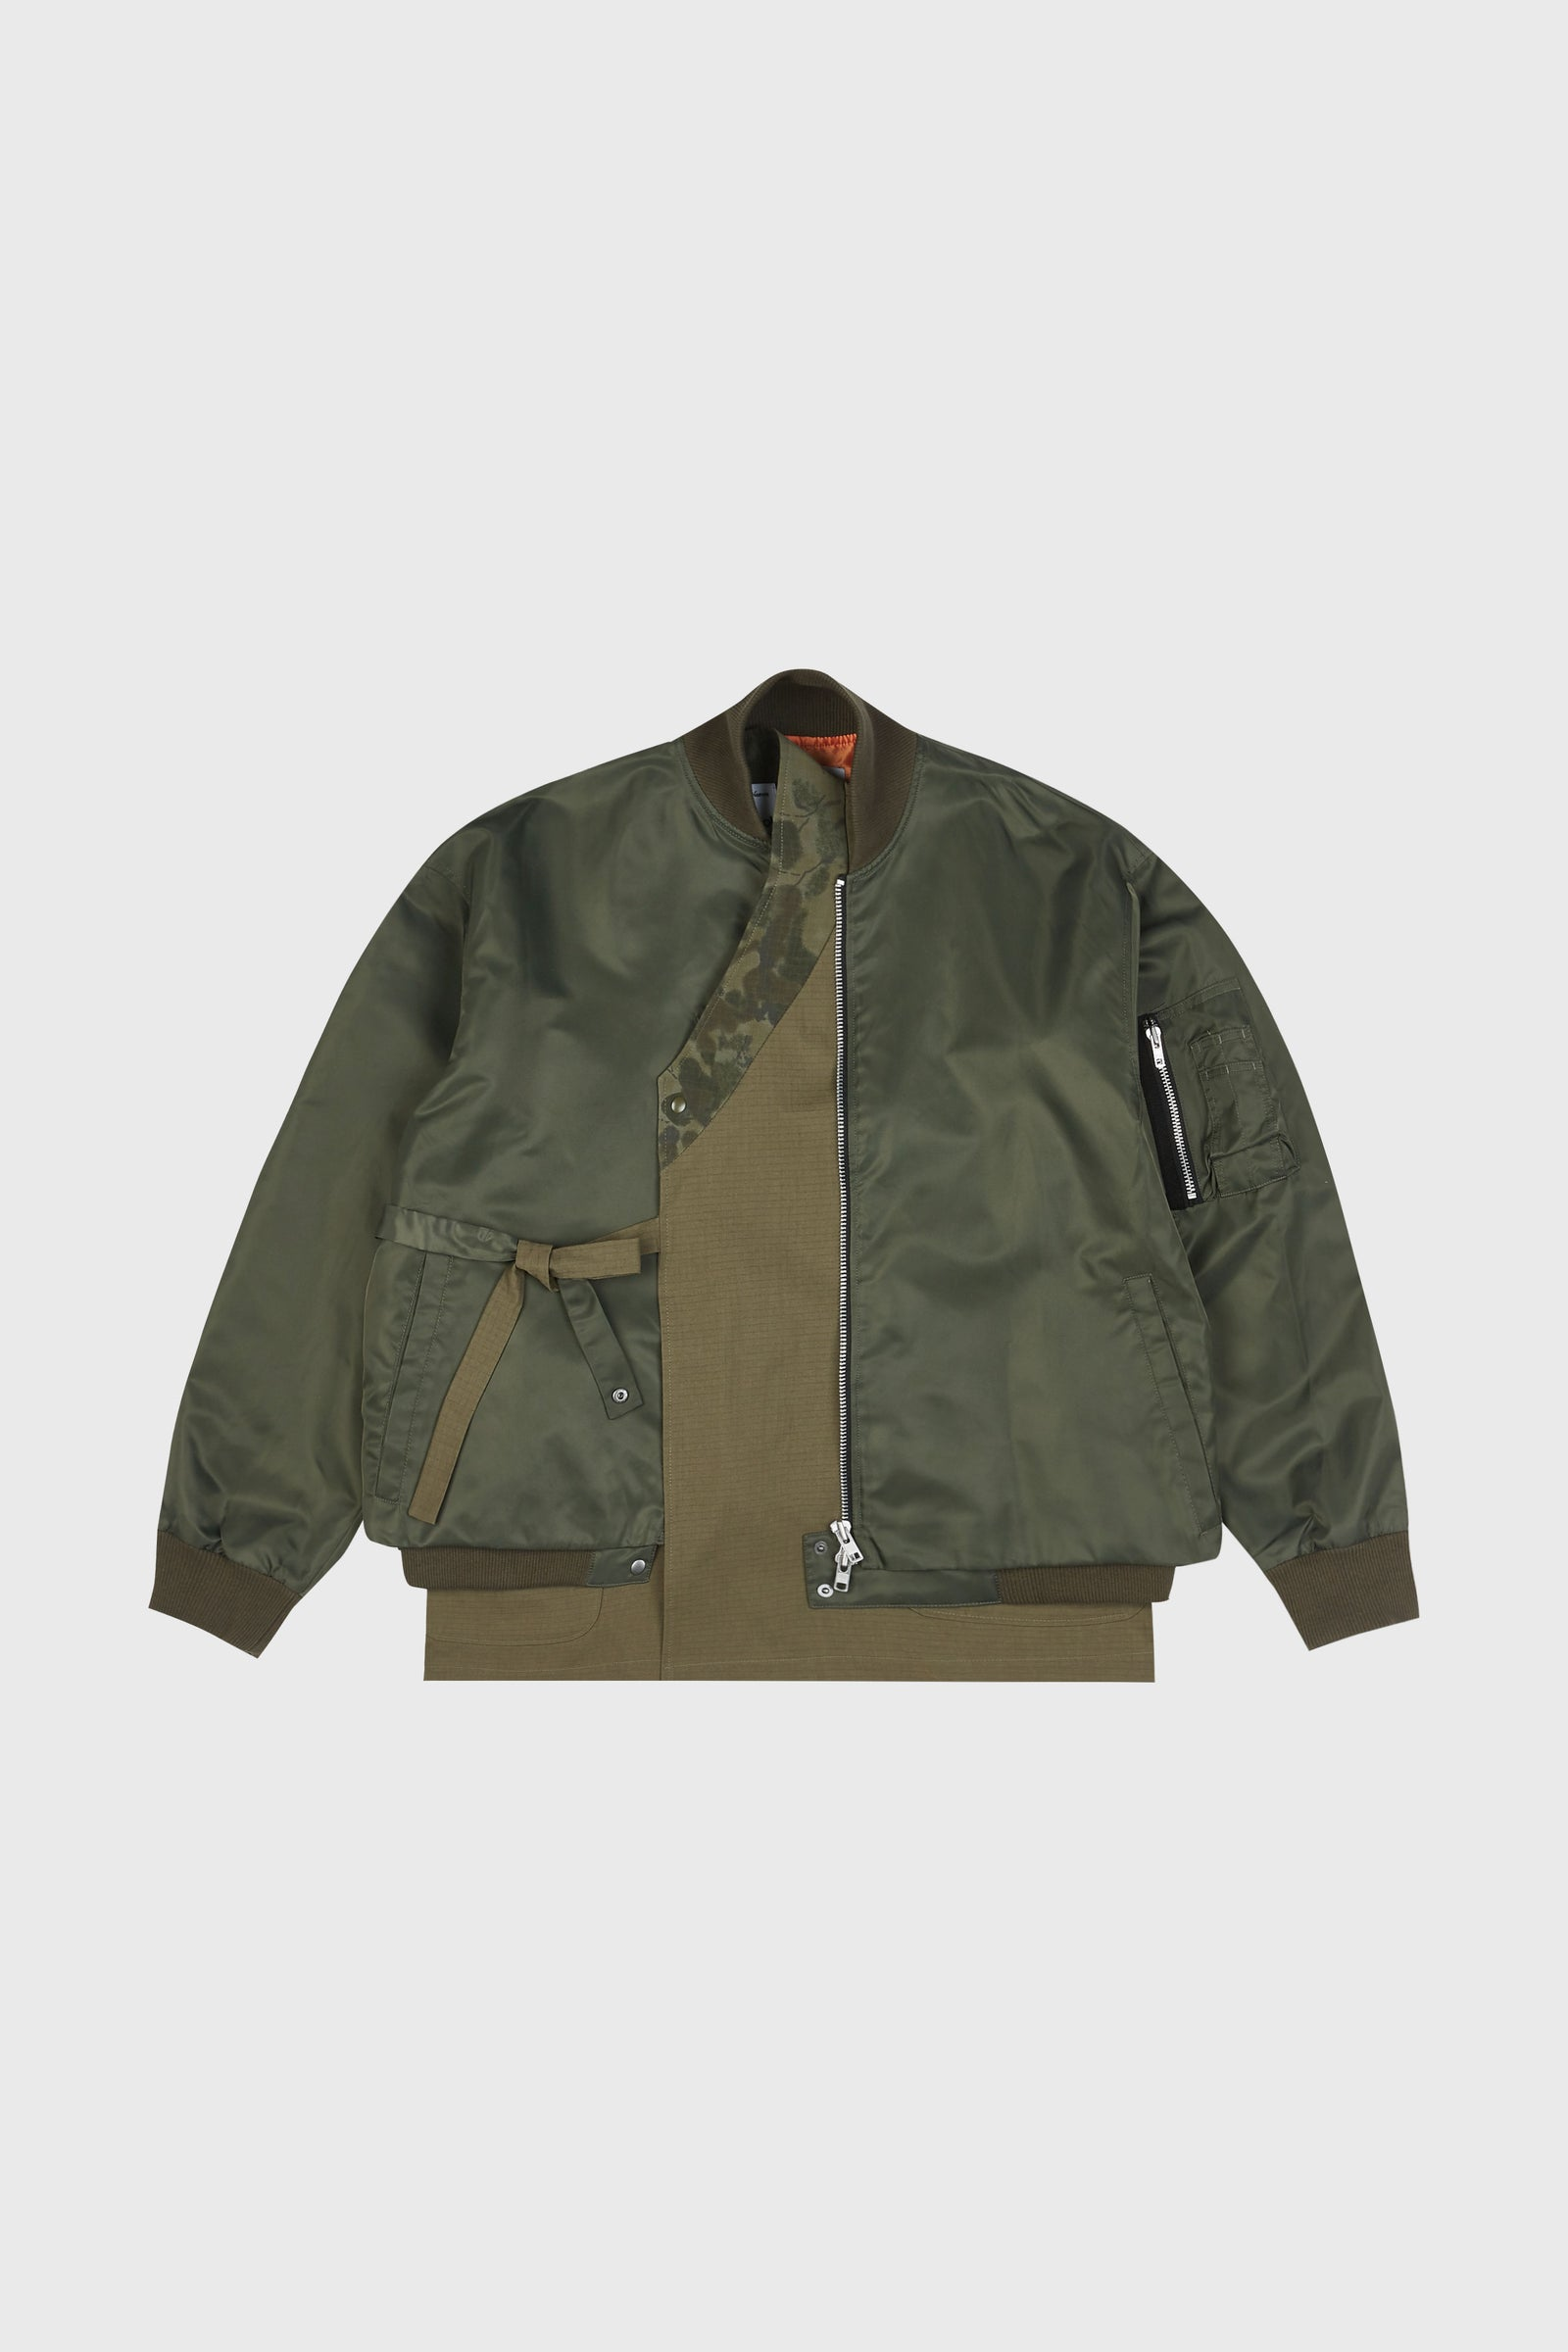 Photo of Army Green Double Layered Jeogori Bomber Jacket, number 2